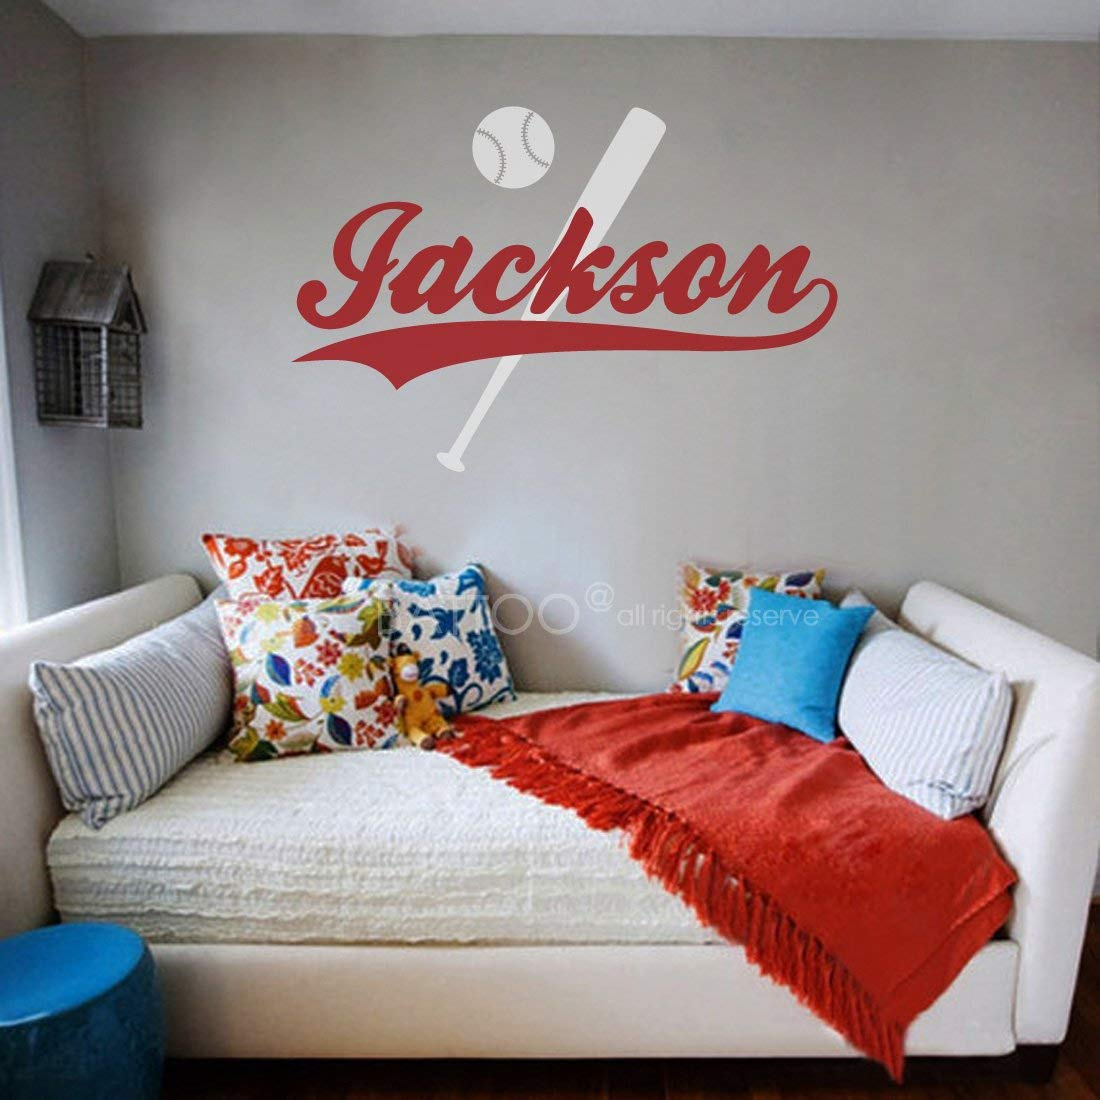 "BATTOO Baseball Name Wall Decal Boys or Girls Name Wall Decal 22"" w Personalized Wall Decal Kids Room Decor Custom Wall Decal Sports Theme Nursery Decor PLUS free hello door decal"